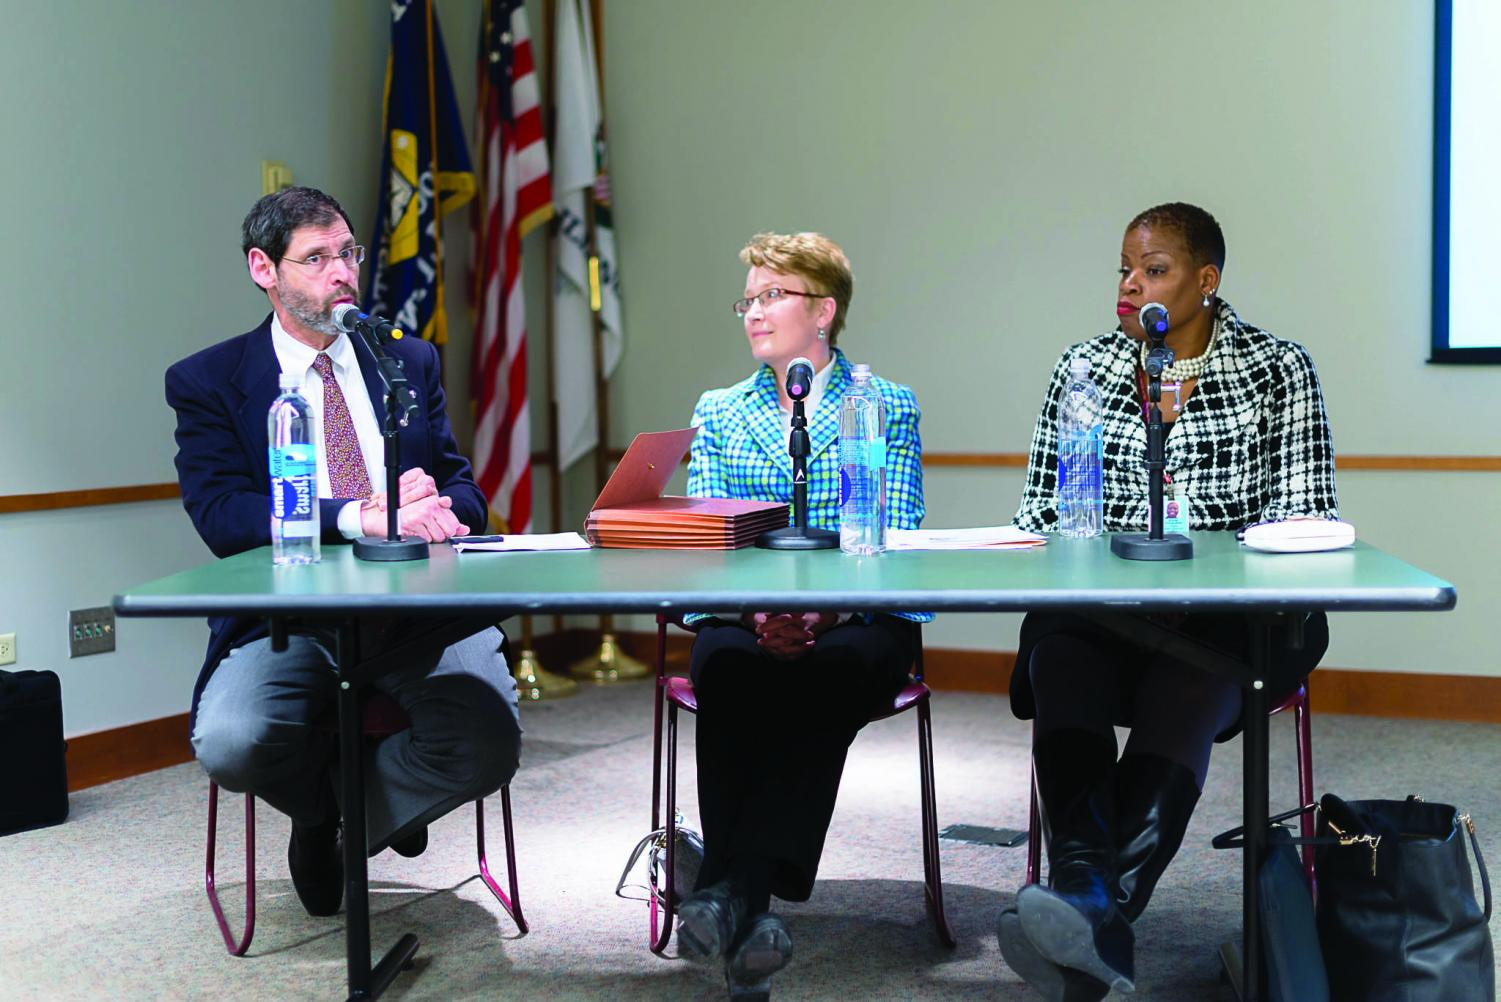 Evonda Thomas-Smith (right) on a panel in 2014. Thomas-Smith will be honored for her contributions to public health at an event Friday.